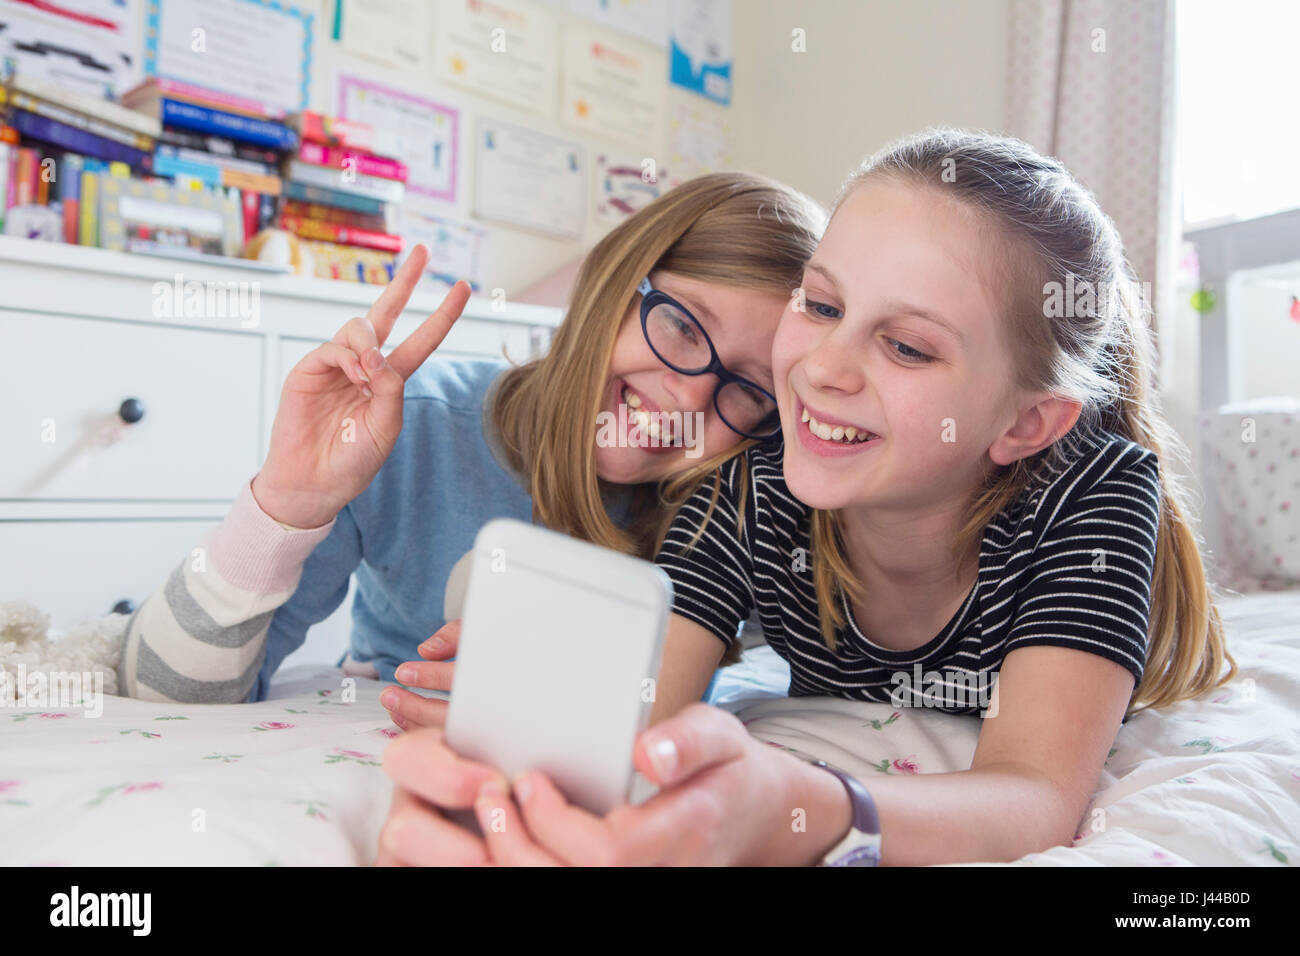 Two Young Girls Posing For Selfie In Bedroom Stock Photo